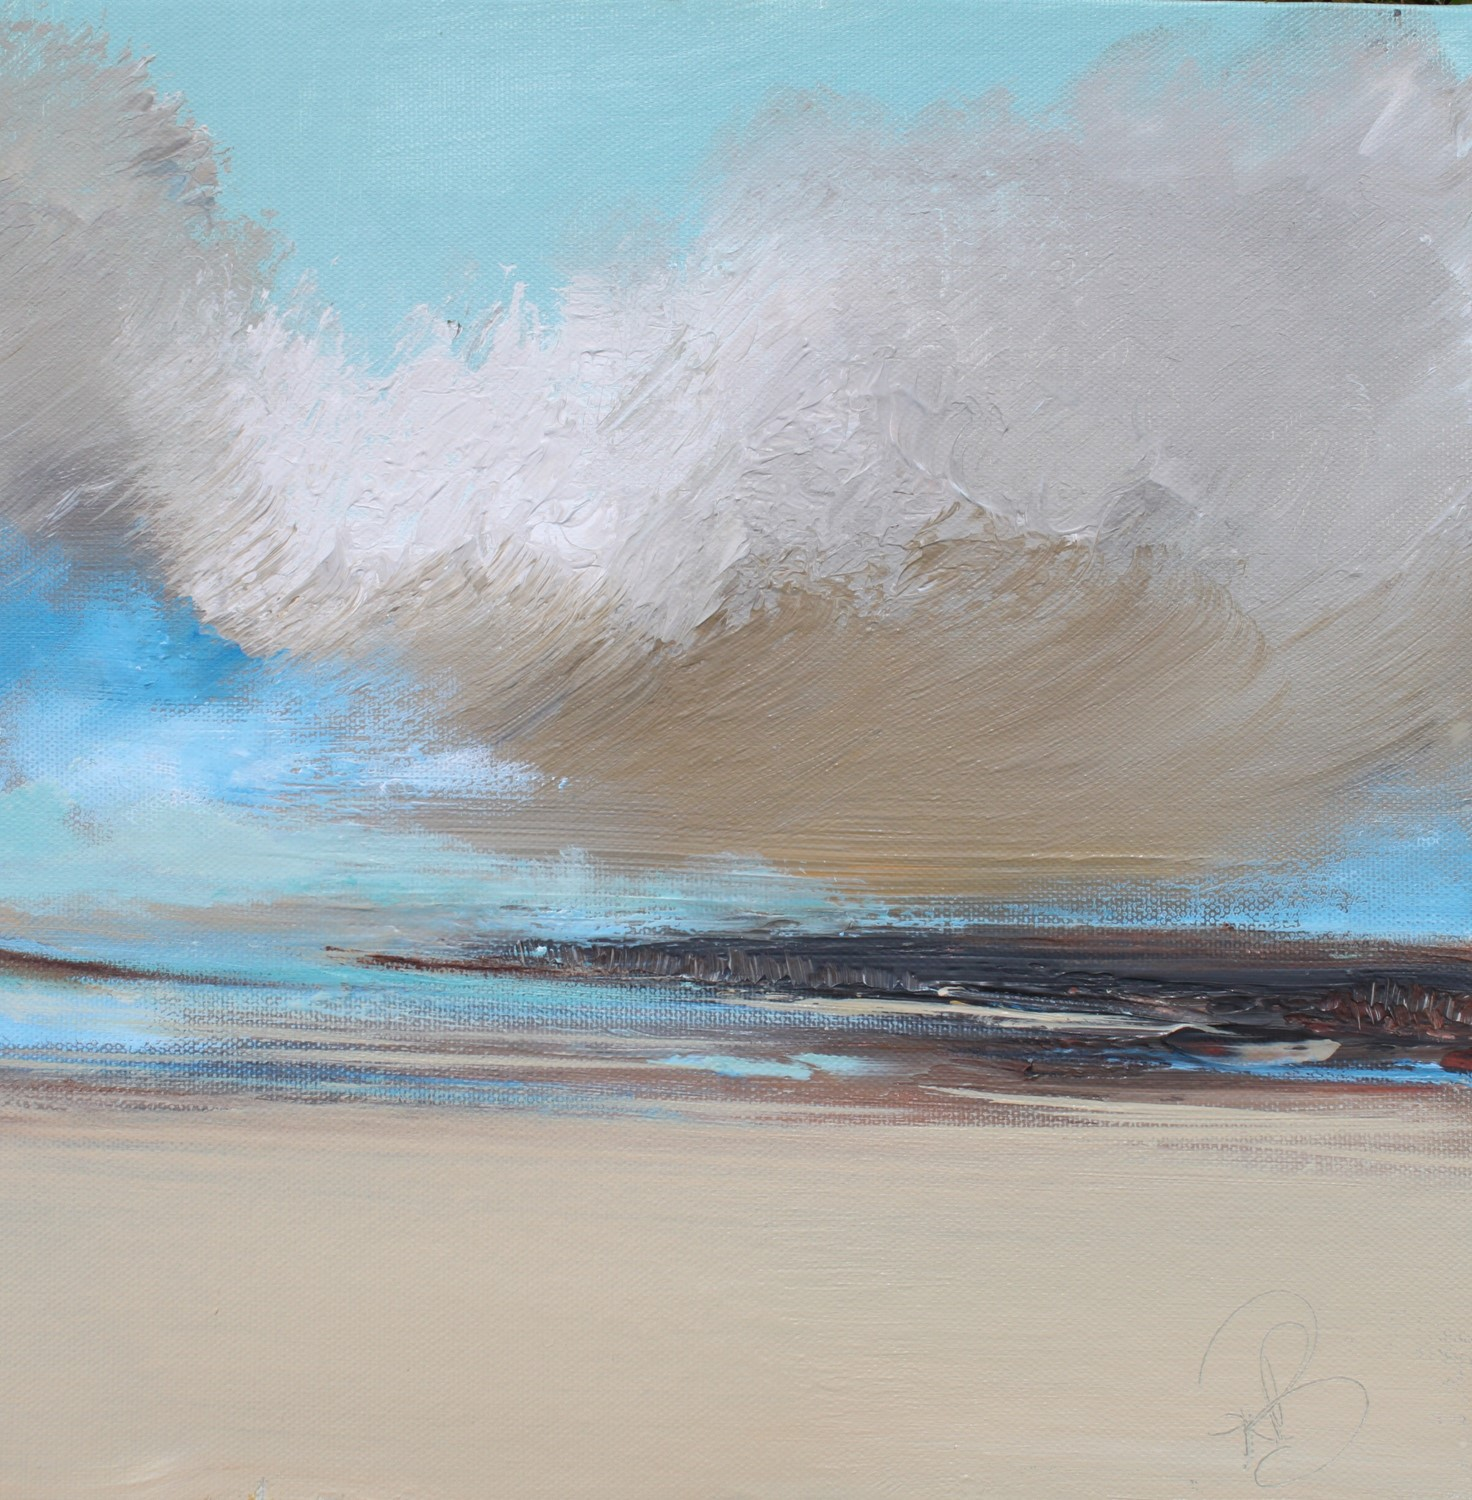 'Cloud Bay' by artist Rosanne Barr